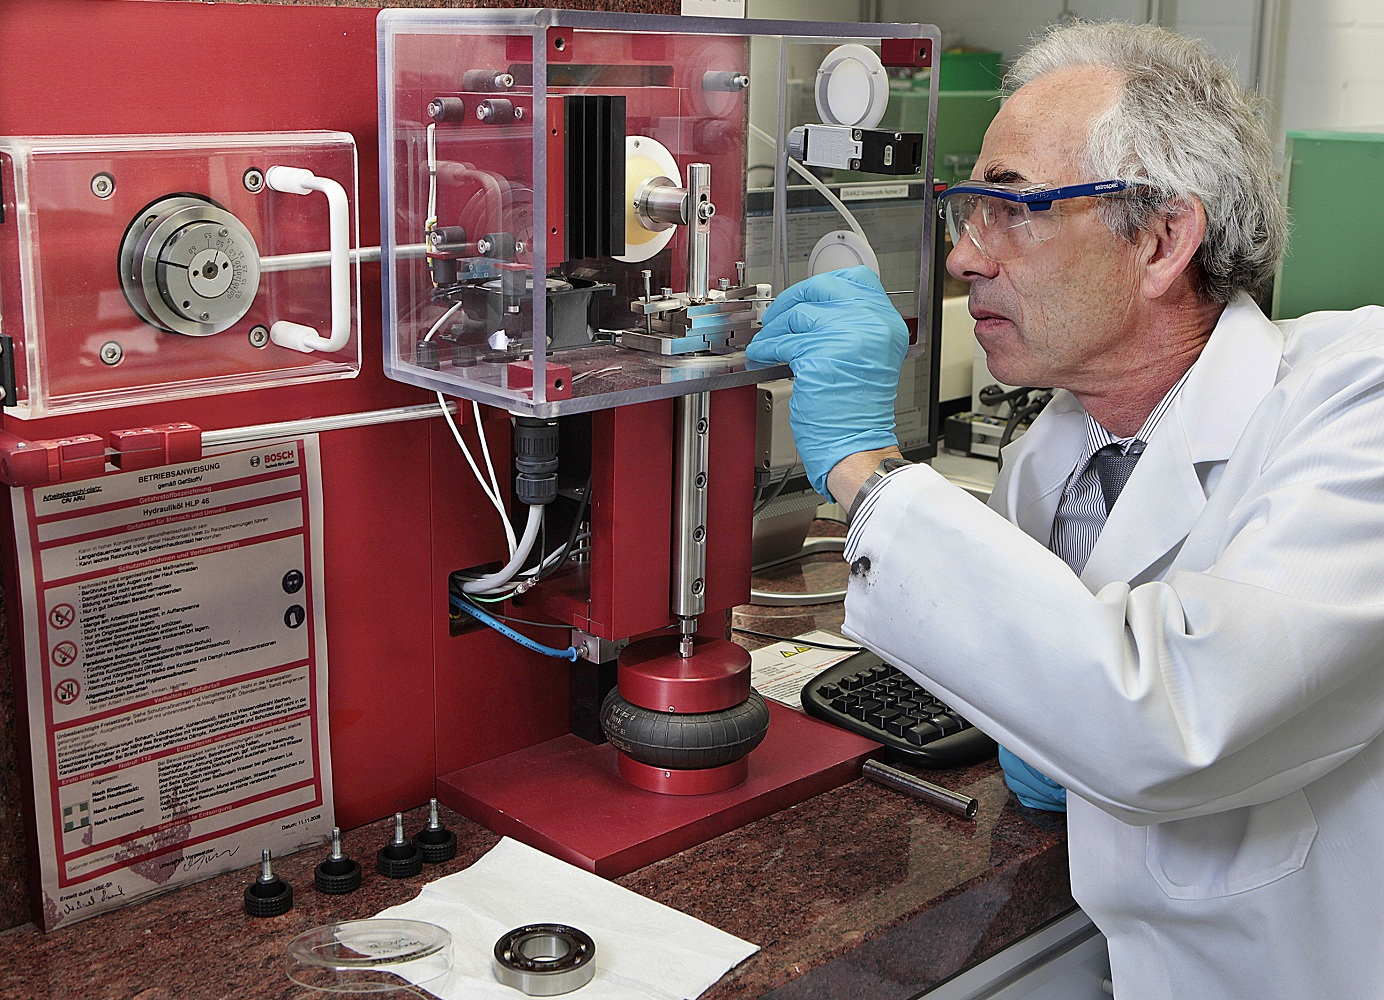 Dr. Gerd Dornhöfer in the research laboratory